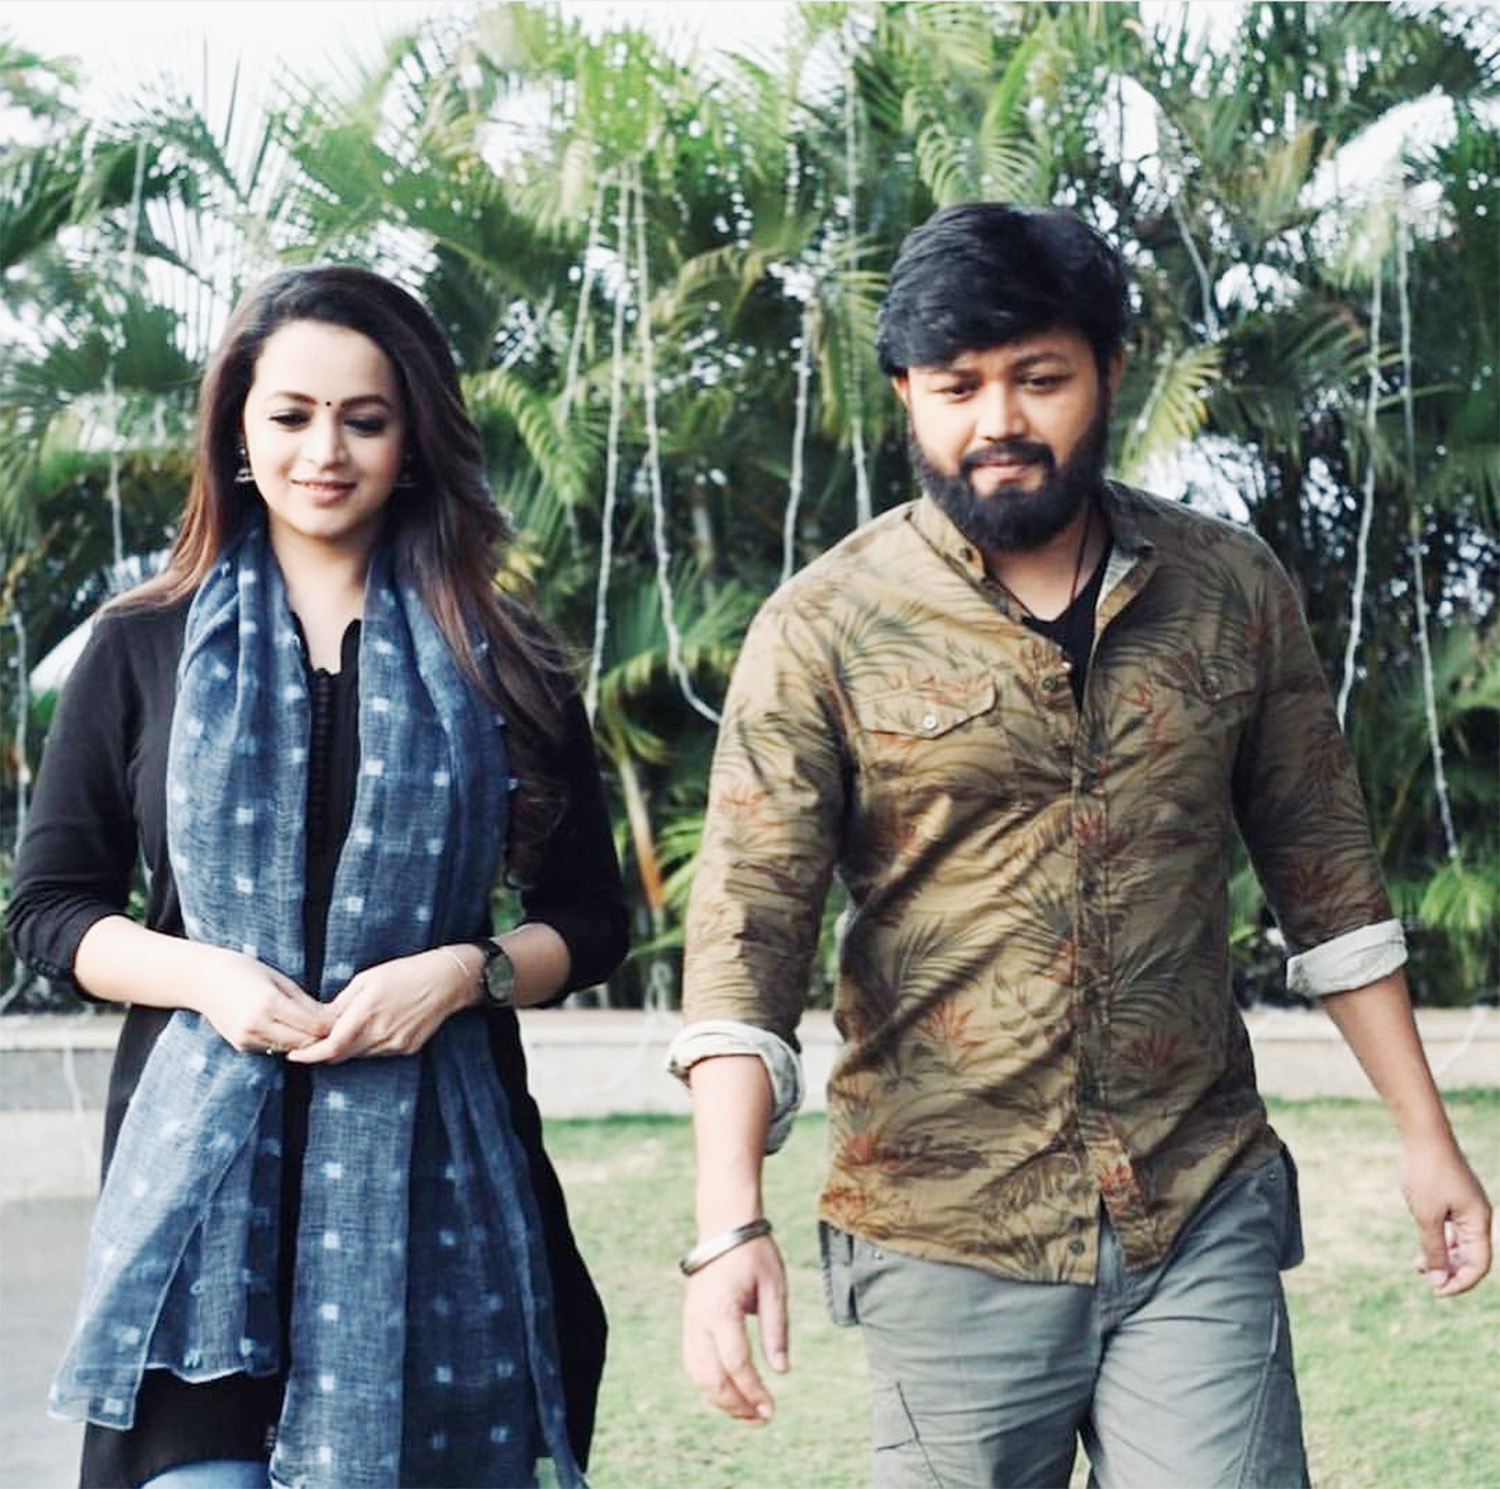 96 kannada remake stills,96 kannada remake photos,actress bhavana,bhavana in 96 kannada remake,bhavan in 99,99 movie stills,99 kannada movie stills,bhavana and ganesh in 99,bhavana and ganesh in 96 kannada remake,99 the movie stills photos,99 movie poster,99 movie new stills,96 kannada remake new stills photos